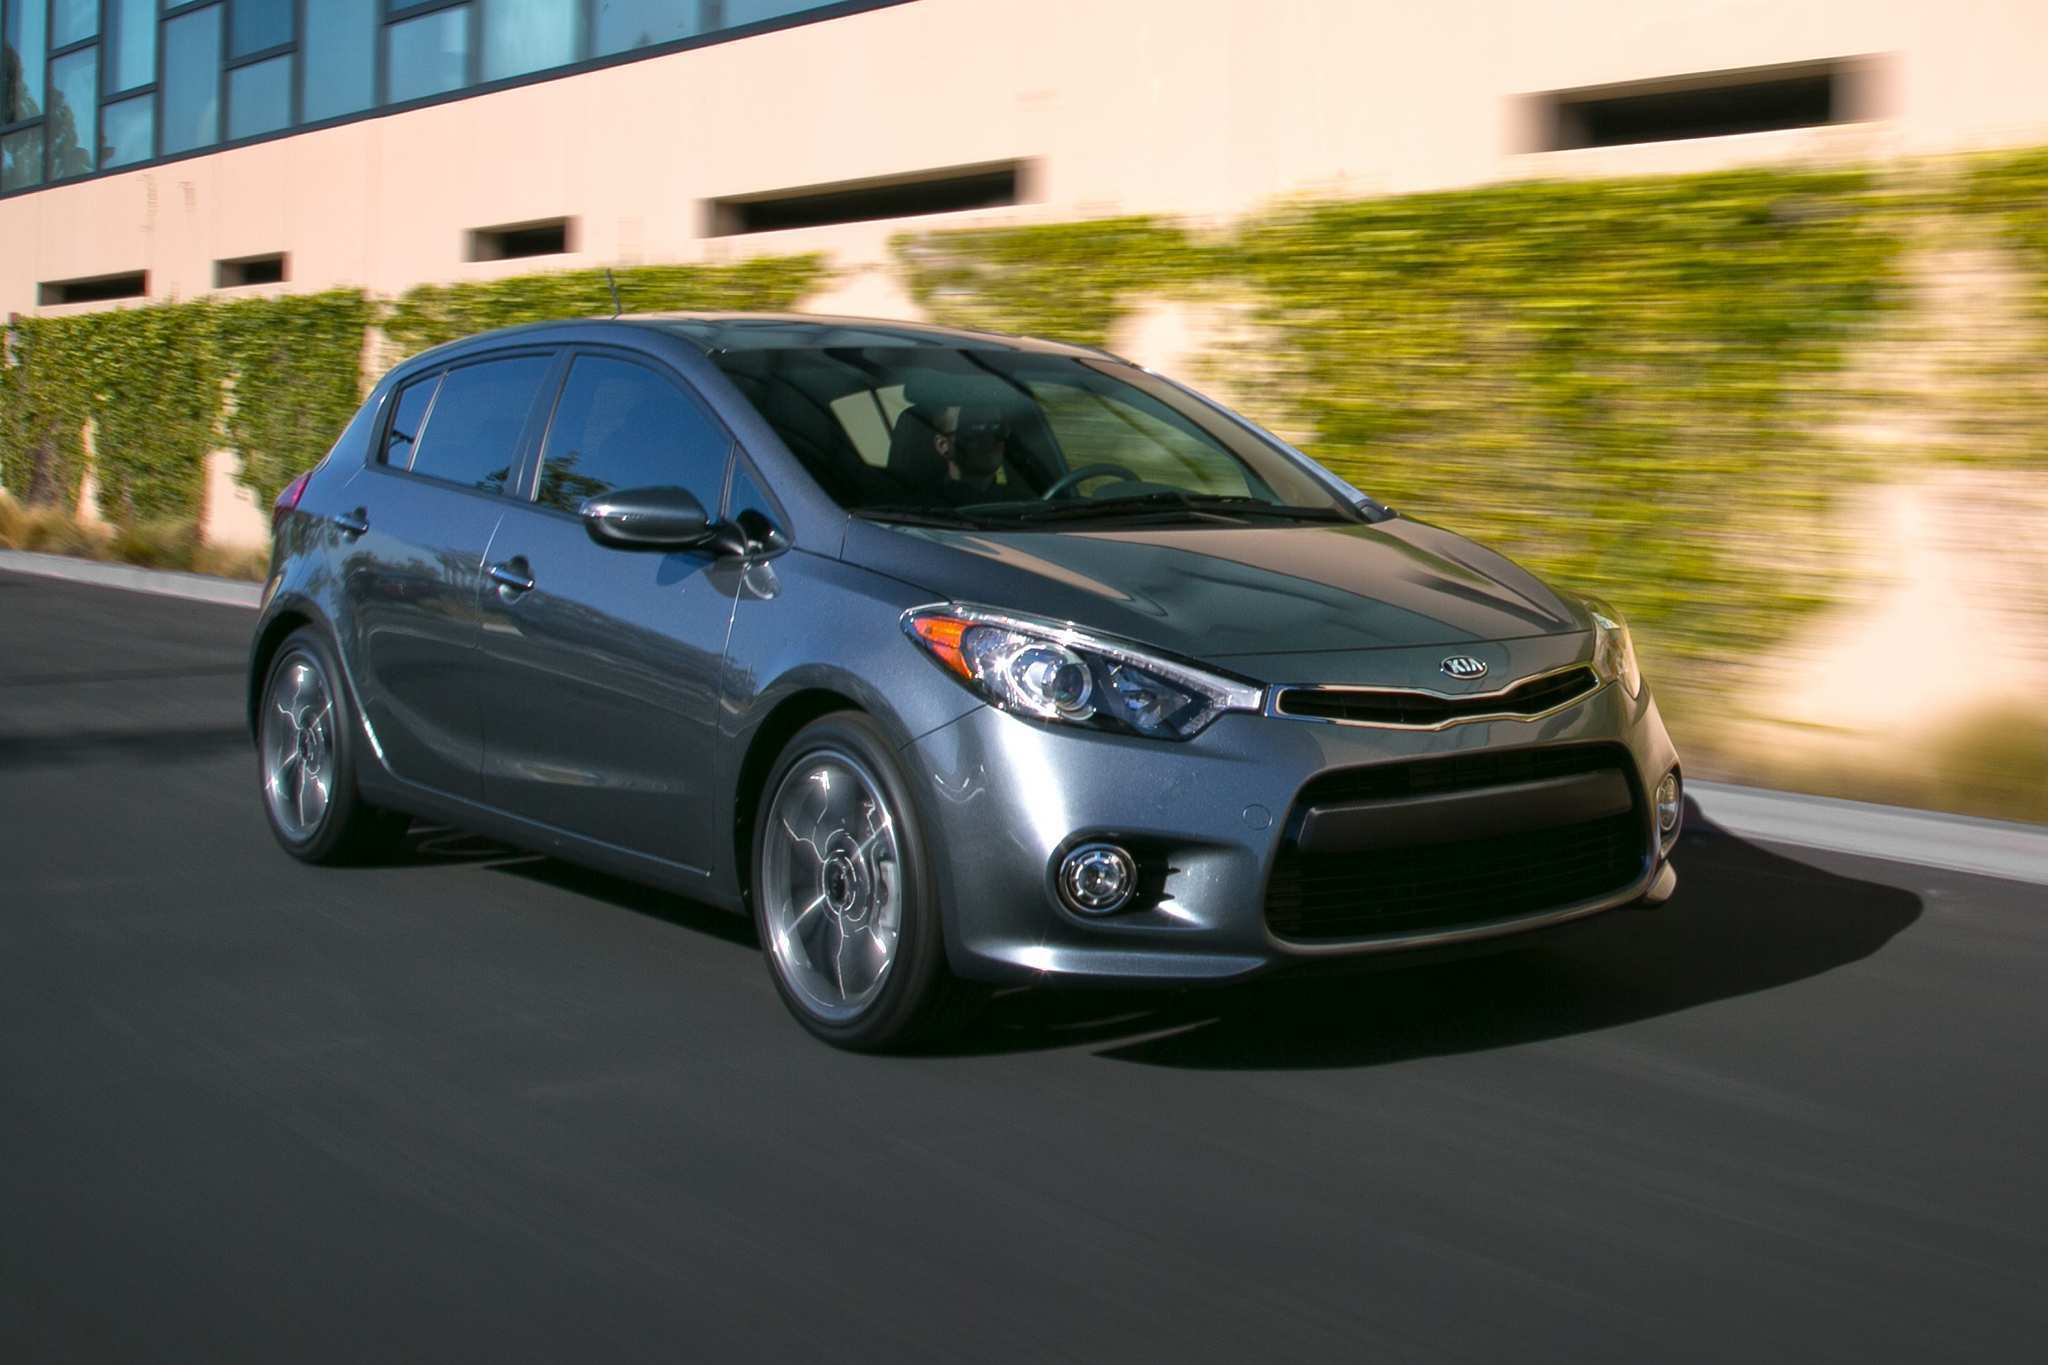 23 Gallery of 2020 Kia Forte5 Hatchback Specs for 2020 Kia Forte5 Hatchback